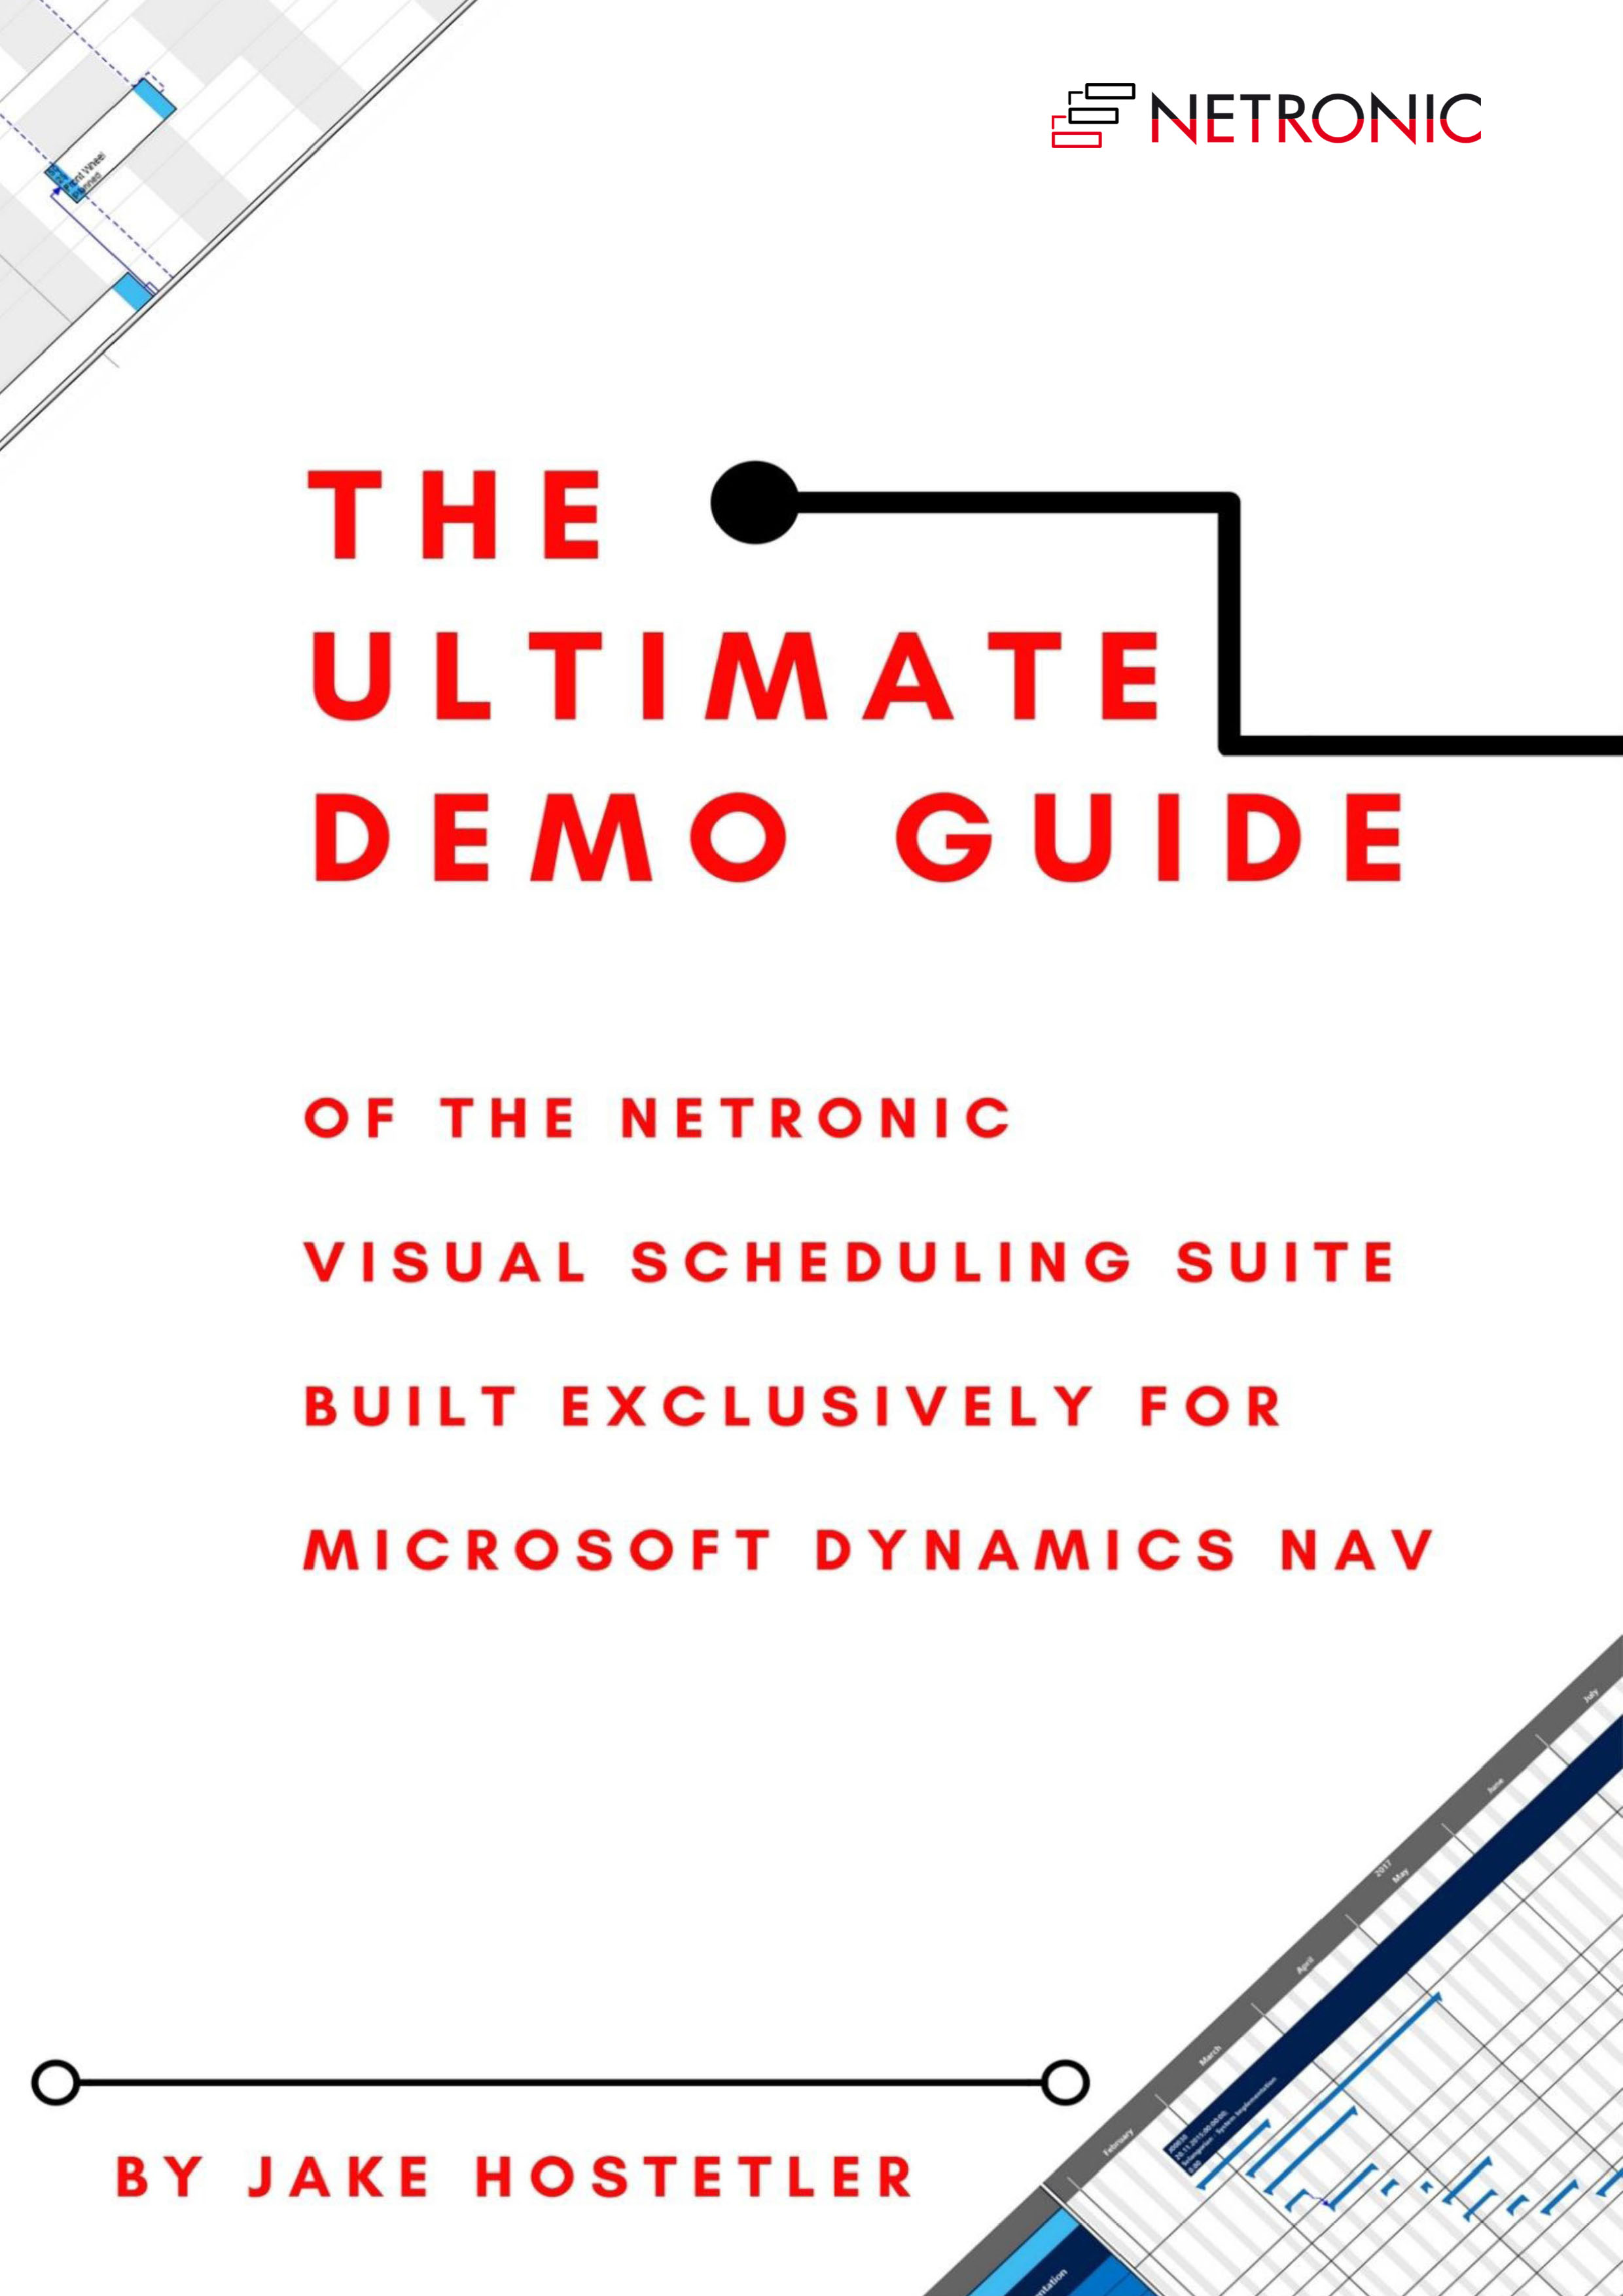 The NETRONIC Ultimate Demo Guide 2019